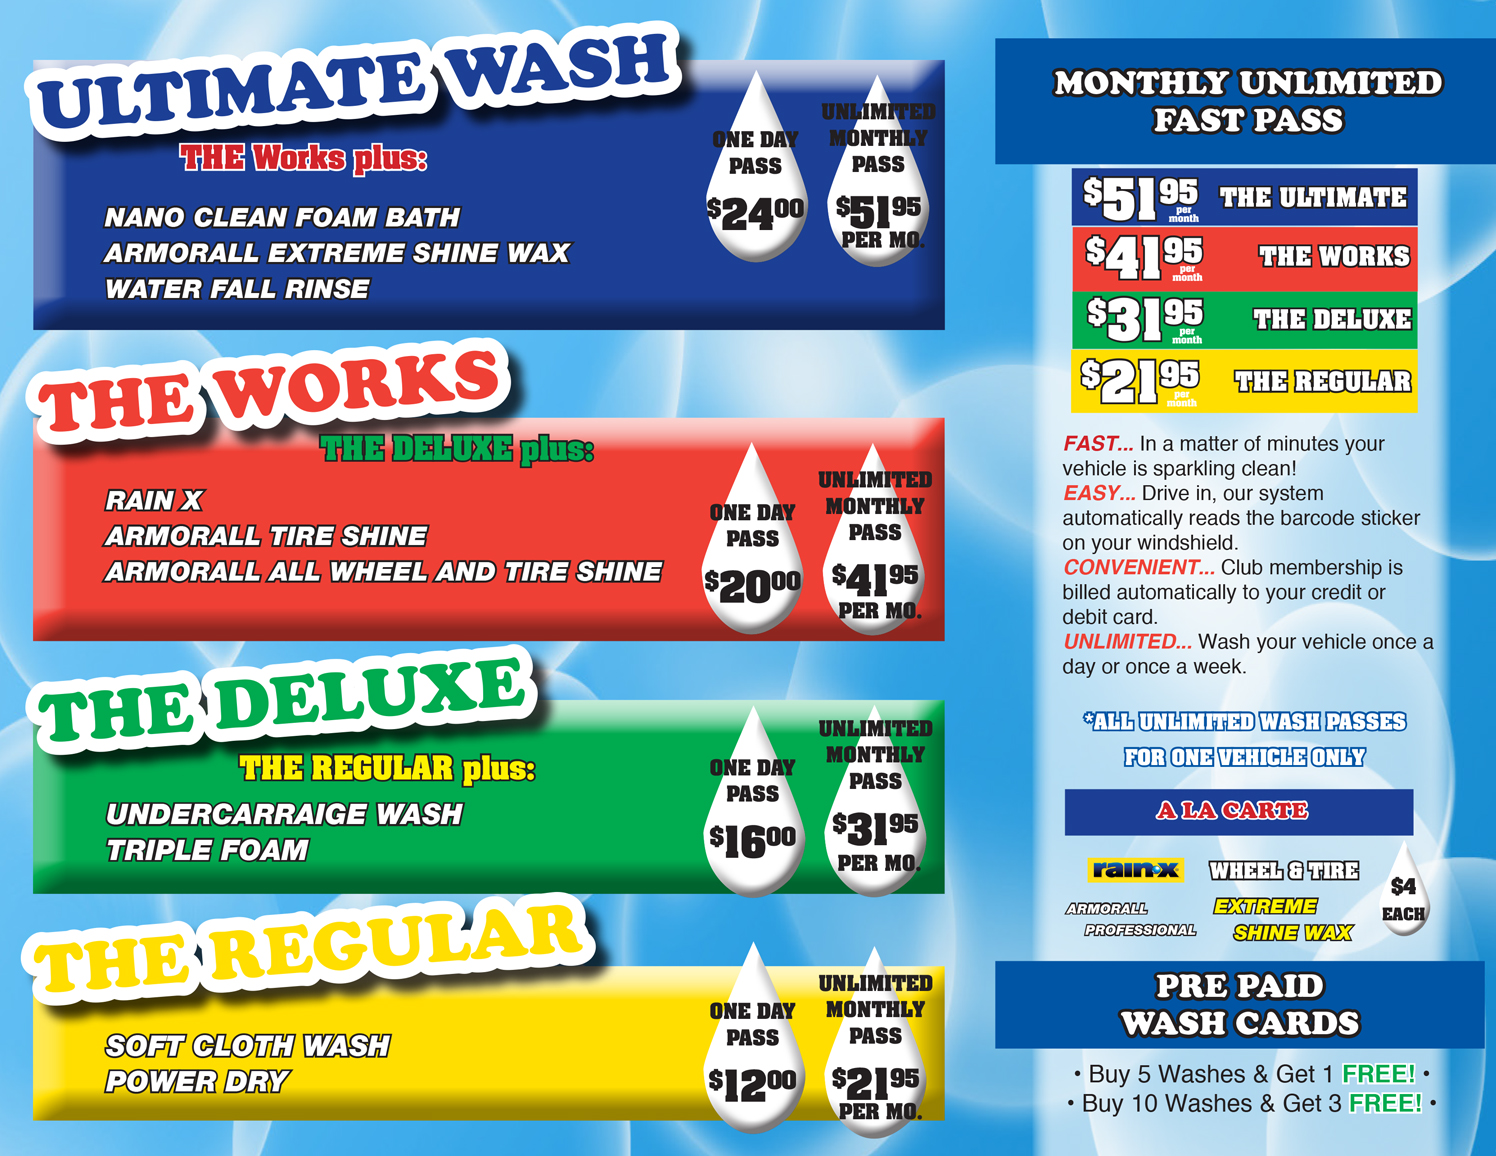 Car Wash Prices: The Premier Car Wash Facility On Upper